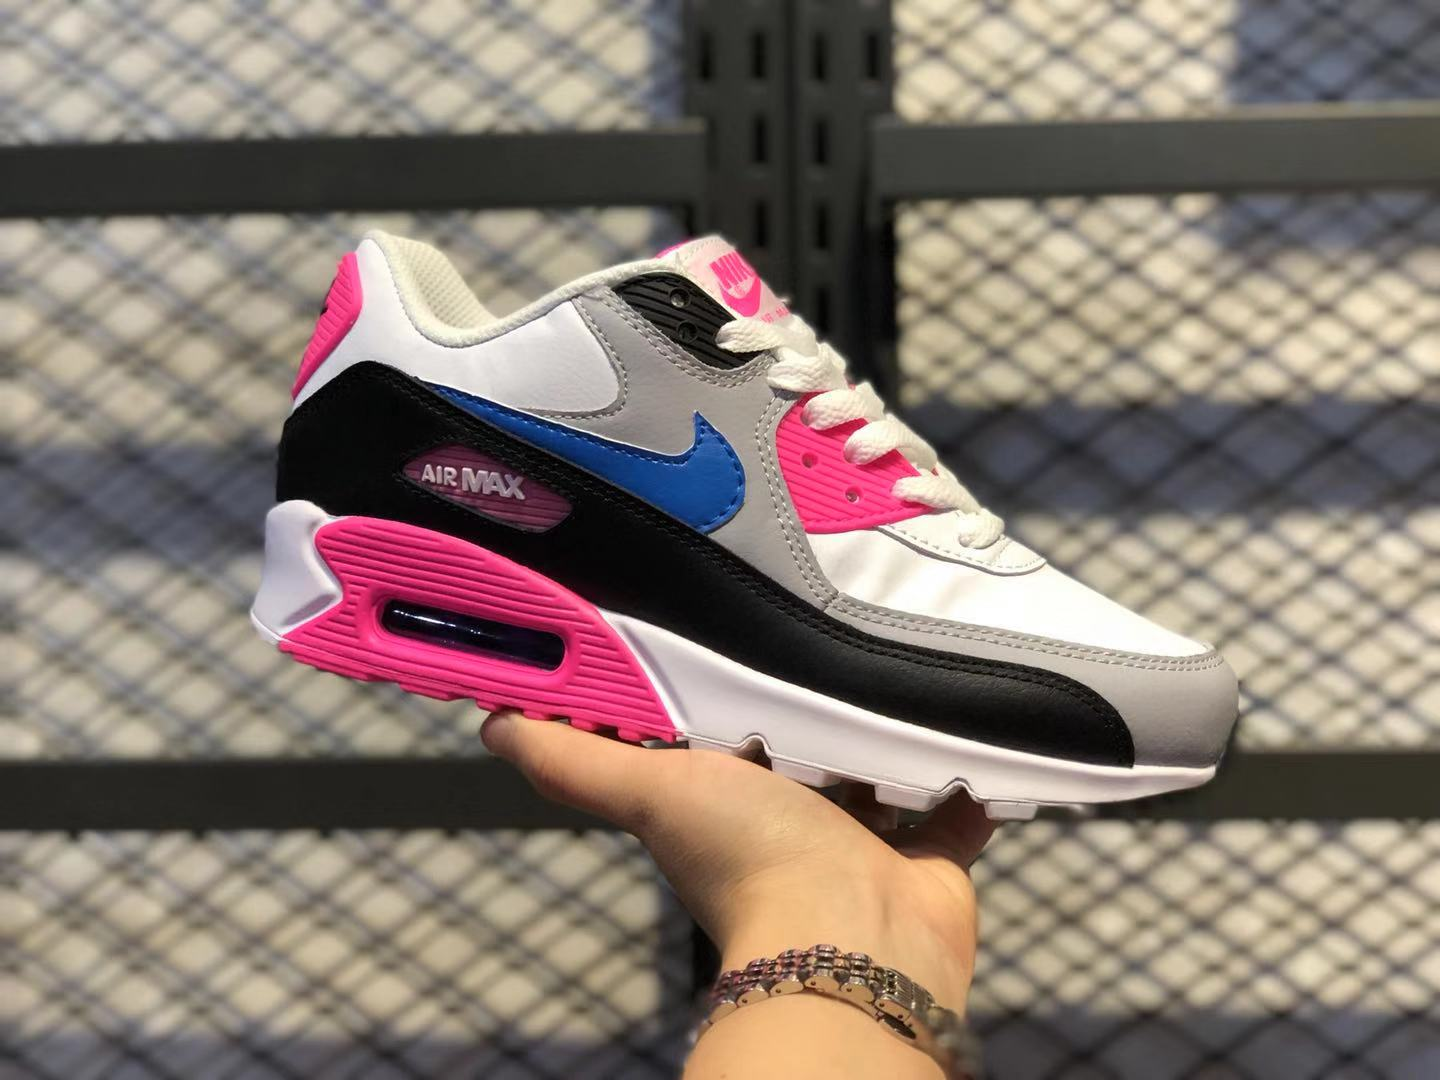 2020 Nike Air Max 90 LTR GS White/Blue/Pink For Online Sale 833376-107